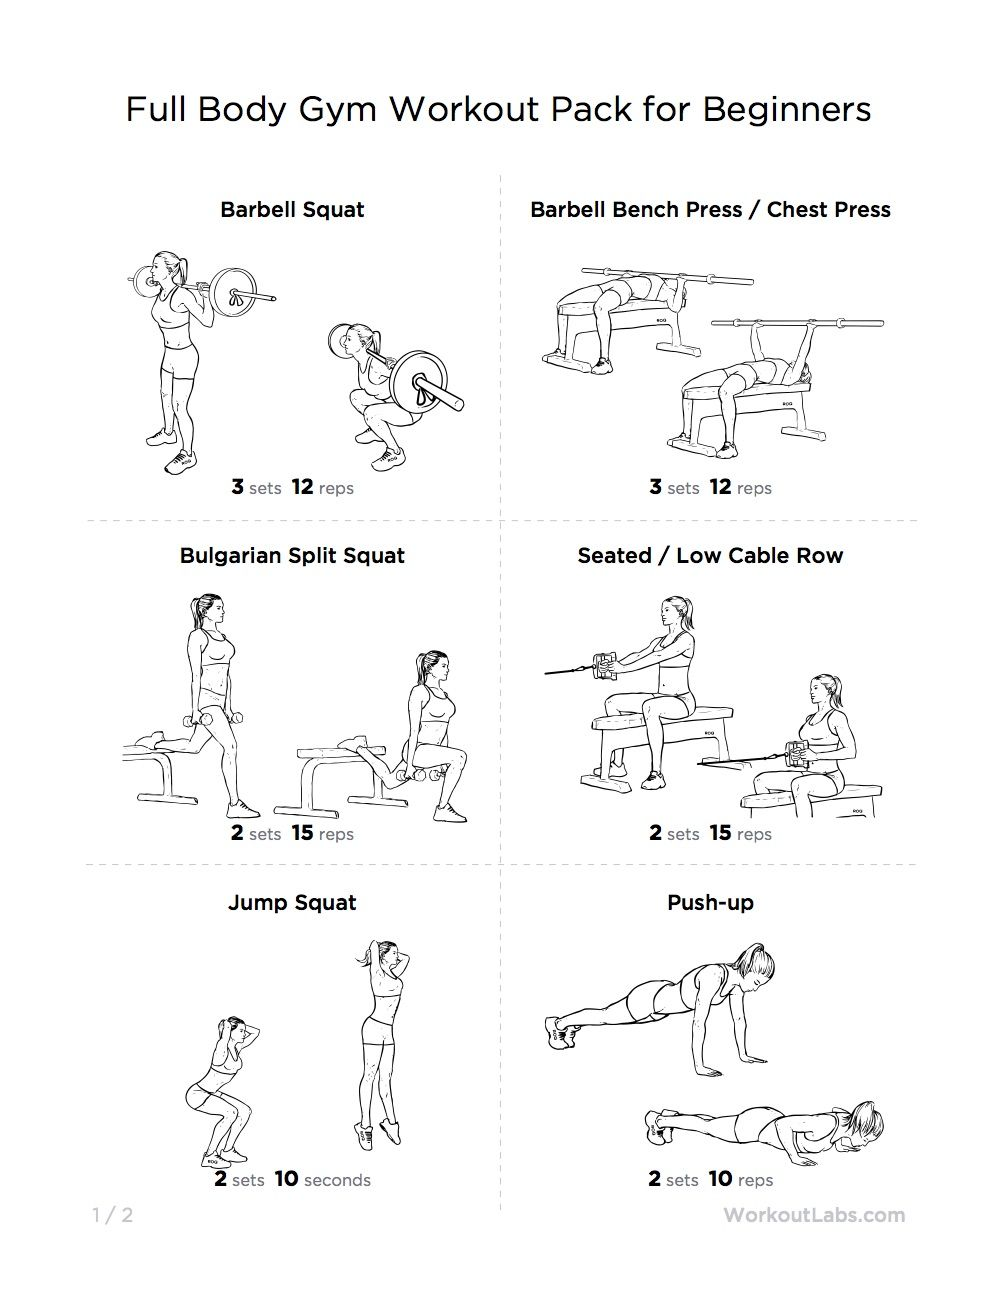 Full Body Gym Workout Pack For Beginners